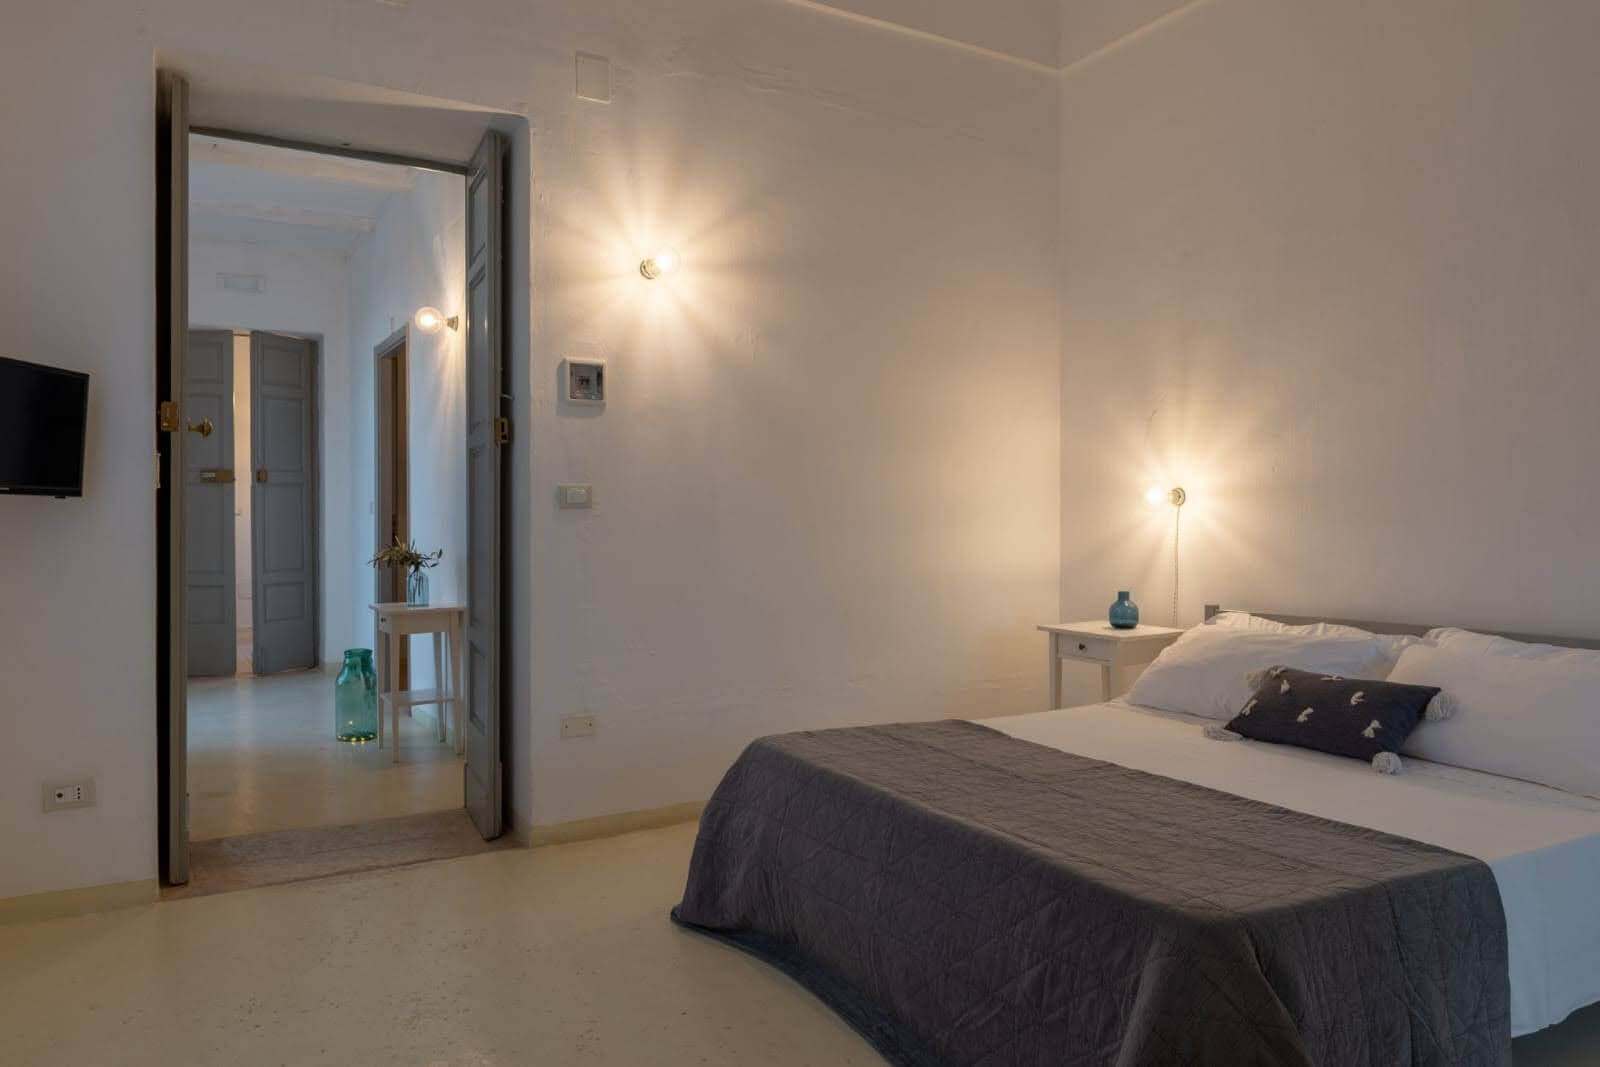 Apartment Acqua holiday accommodation in Ostuni